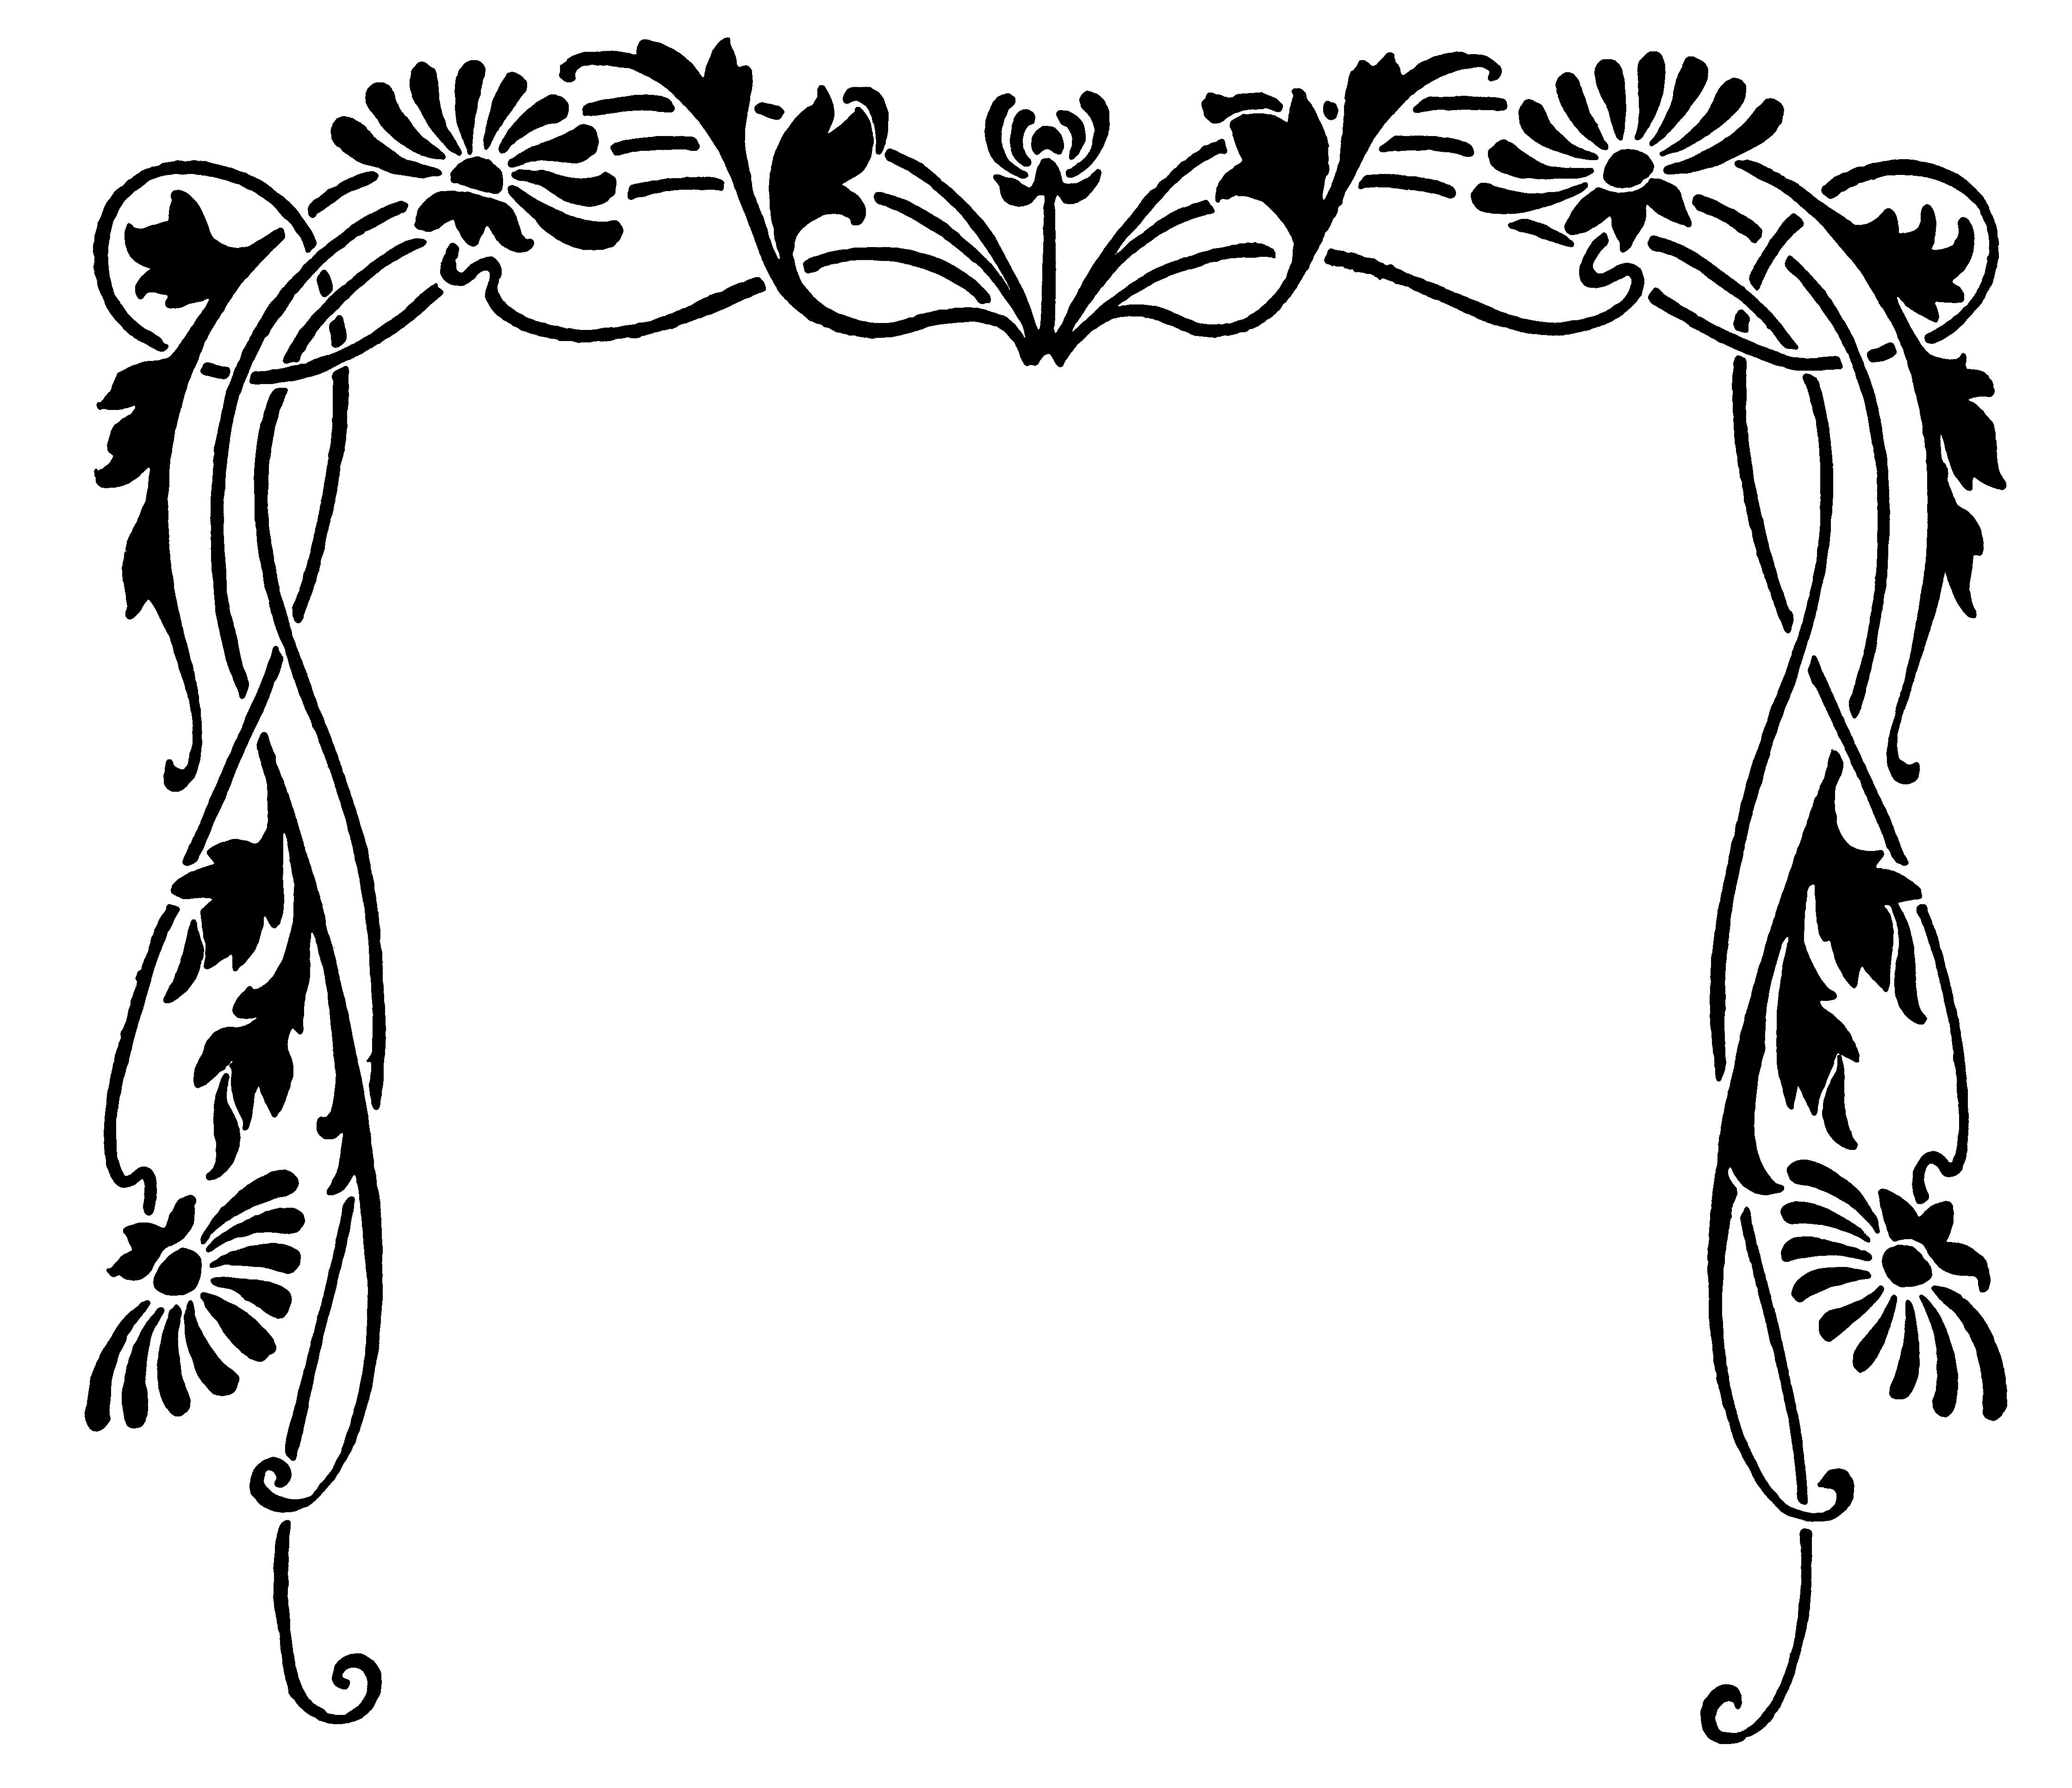 Art Nouveau Border For Embroidery Art Nouveau Art Deco Arts And